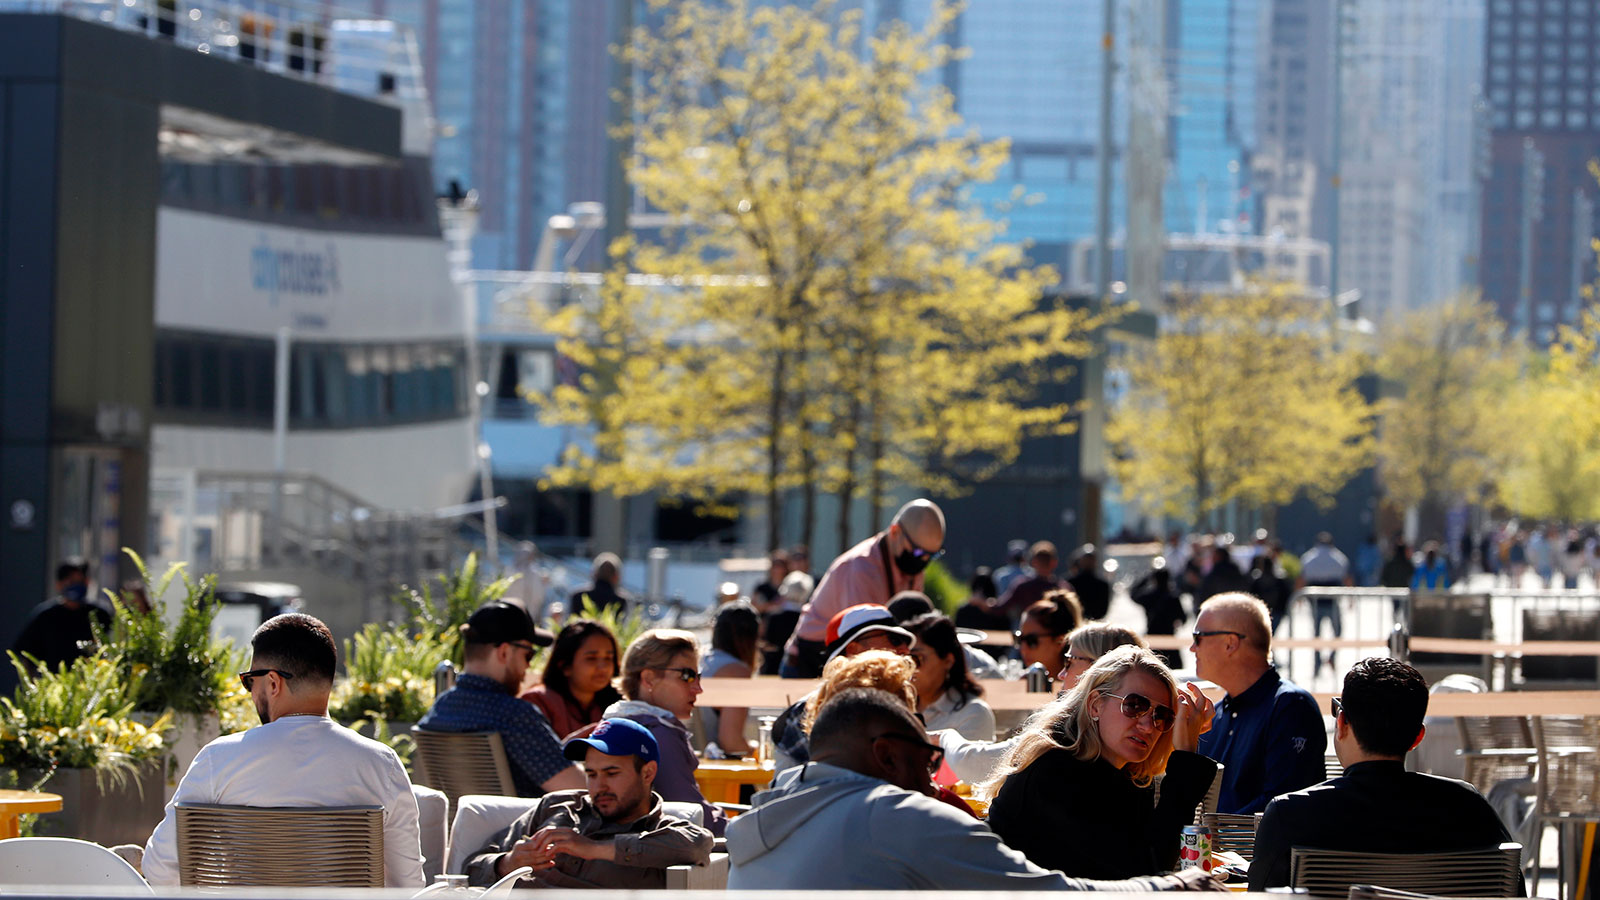 People enjoy their time in an outside sitting area of a restaurant in Chicago's Navy Pier on Friday, May 14.